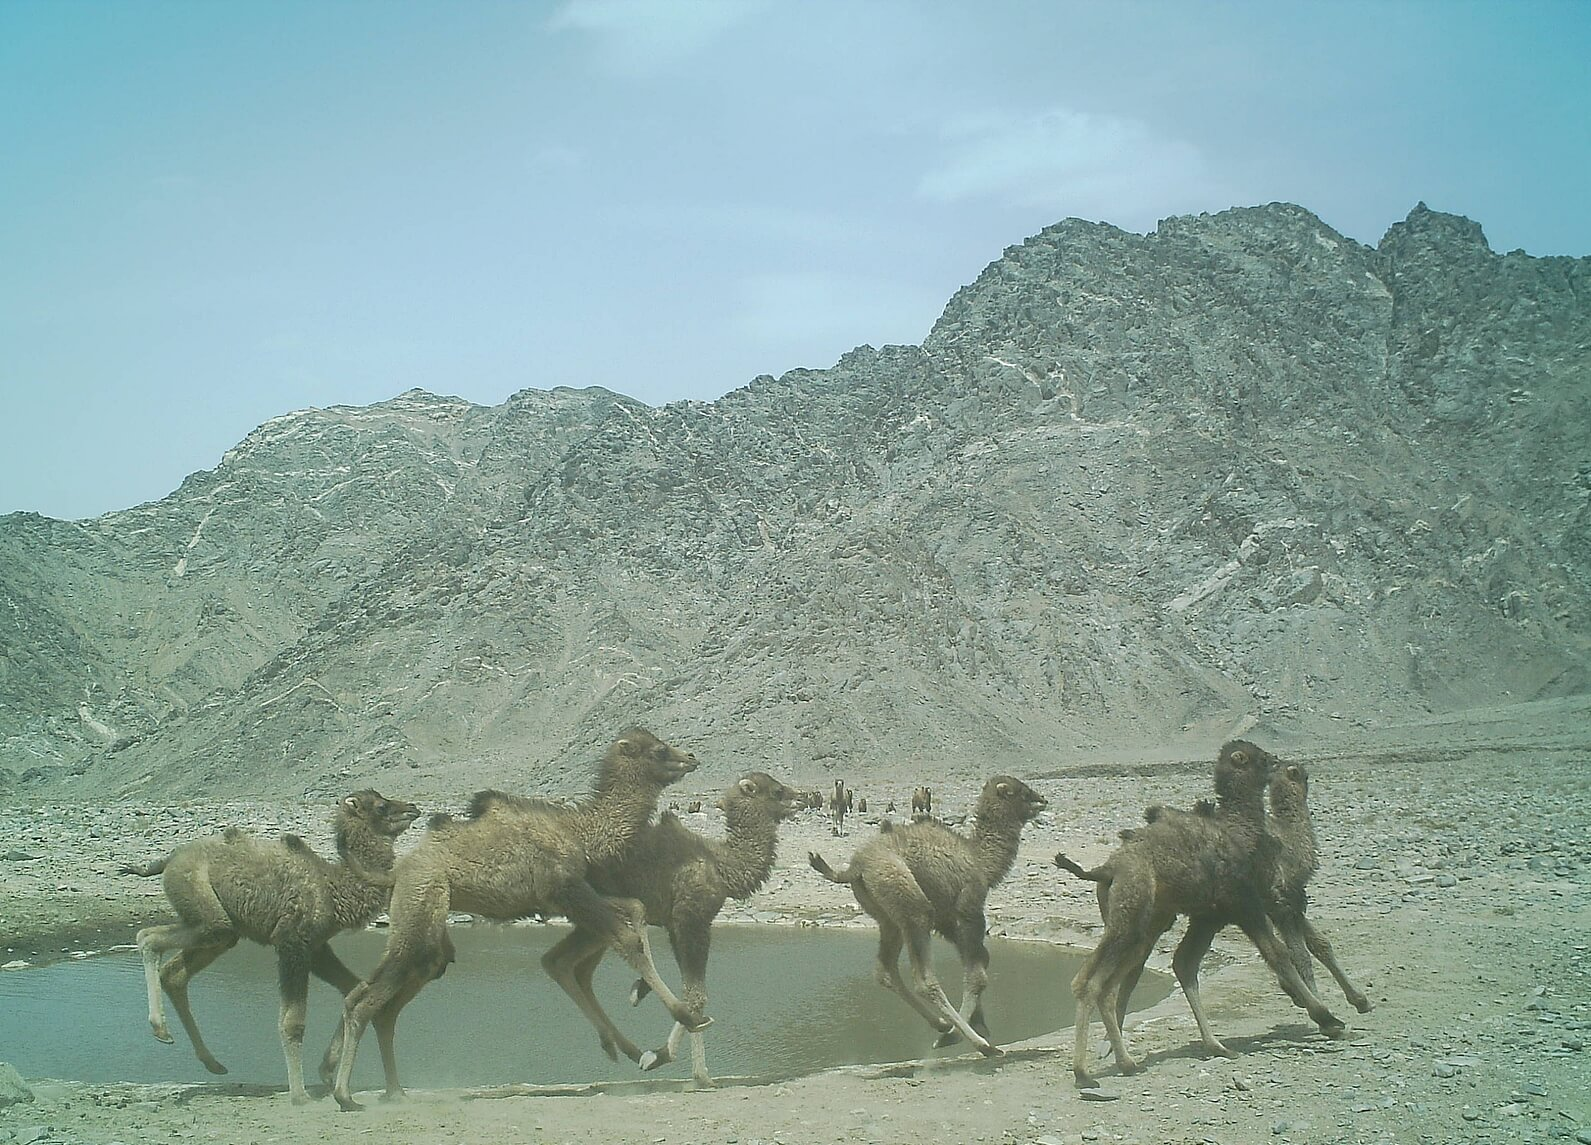 A group of young wild camel calves frisking around a water hole in the Desert of Lop, China